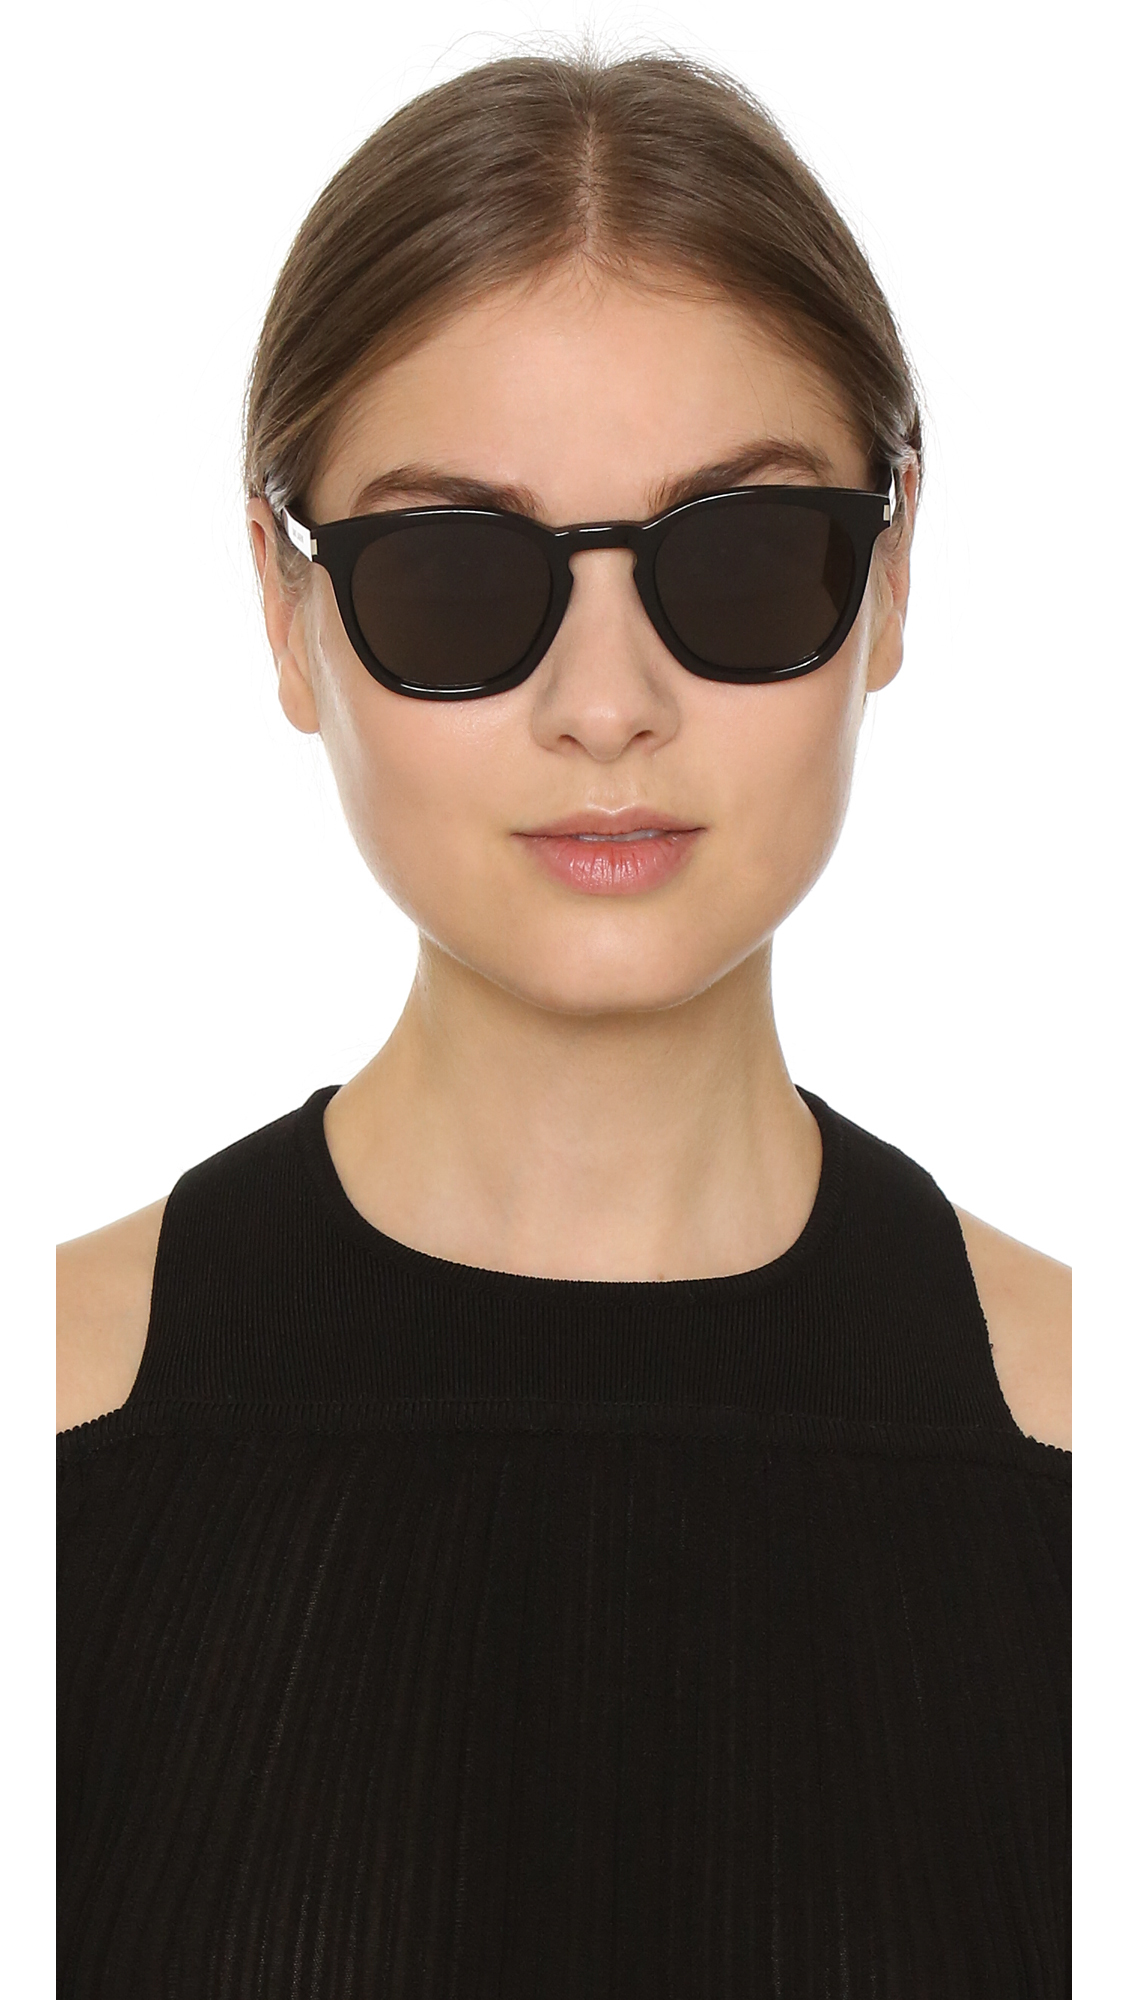 e9130fd76d6 Saint Laurent SL 28 Mineral Glass Sunglasses